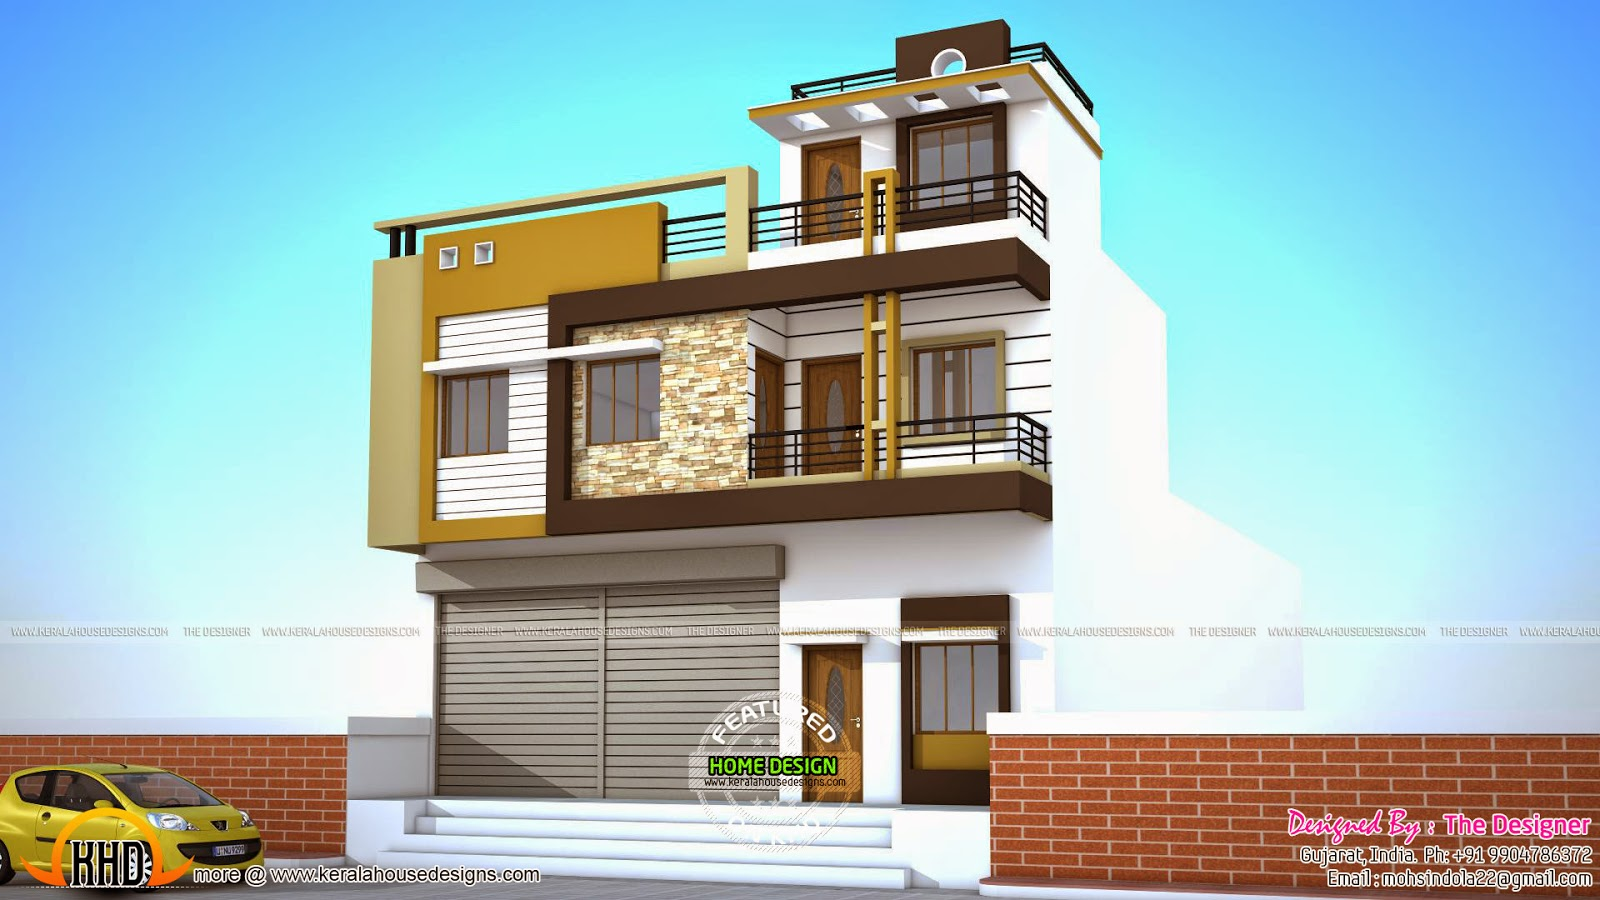 2 house plans with shops on ground floor kerala home for Shop plans and designs